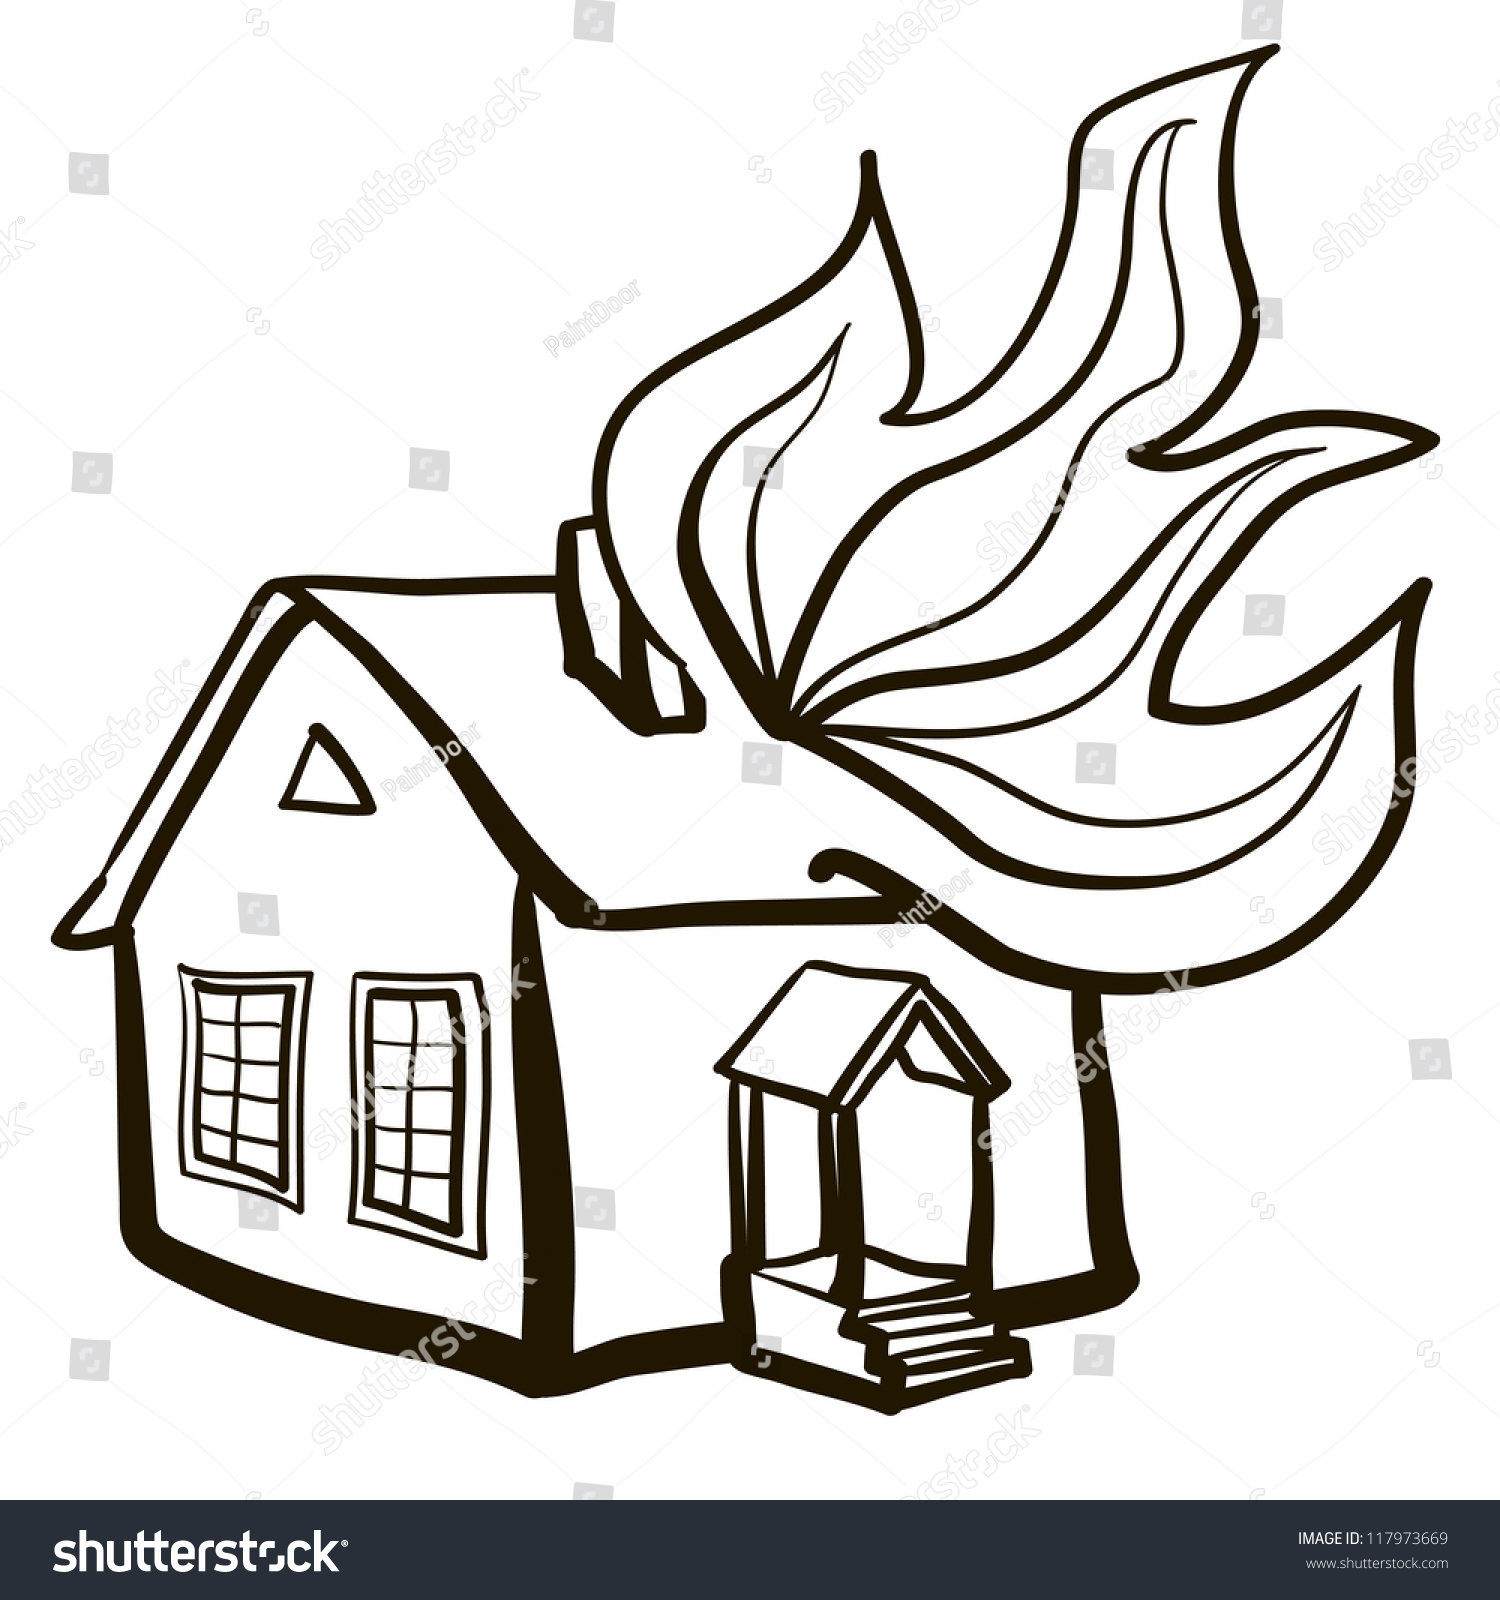 Burning House Clipart Black And White.